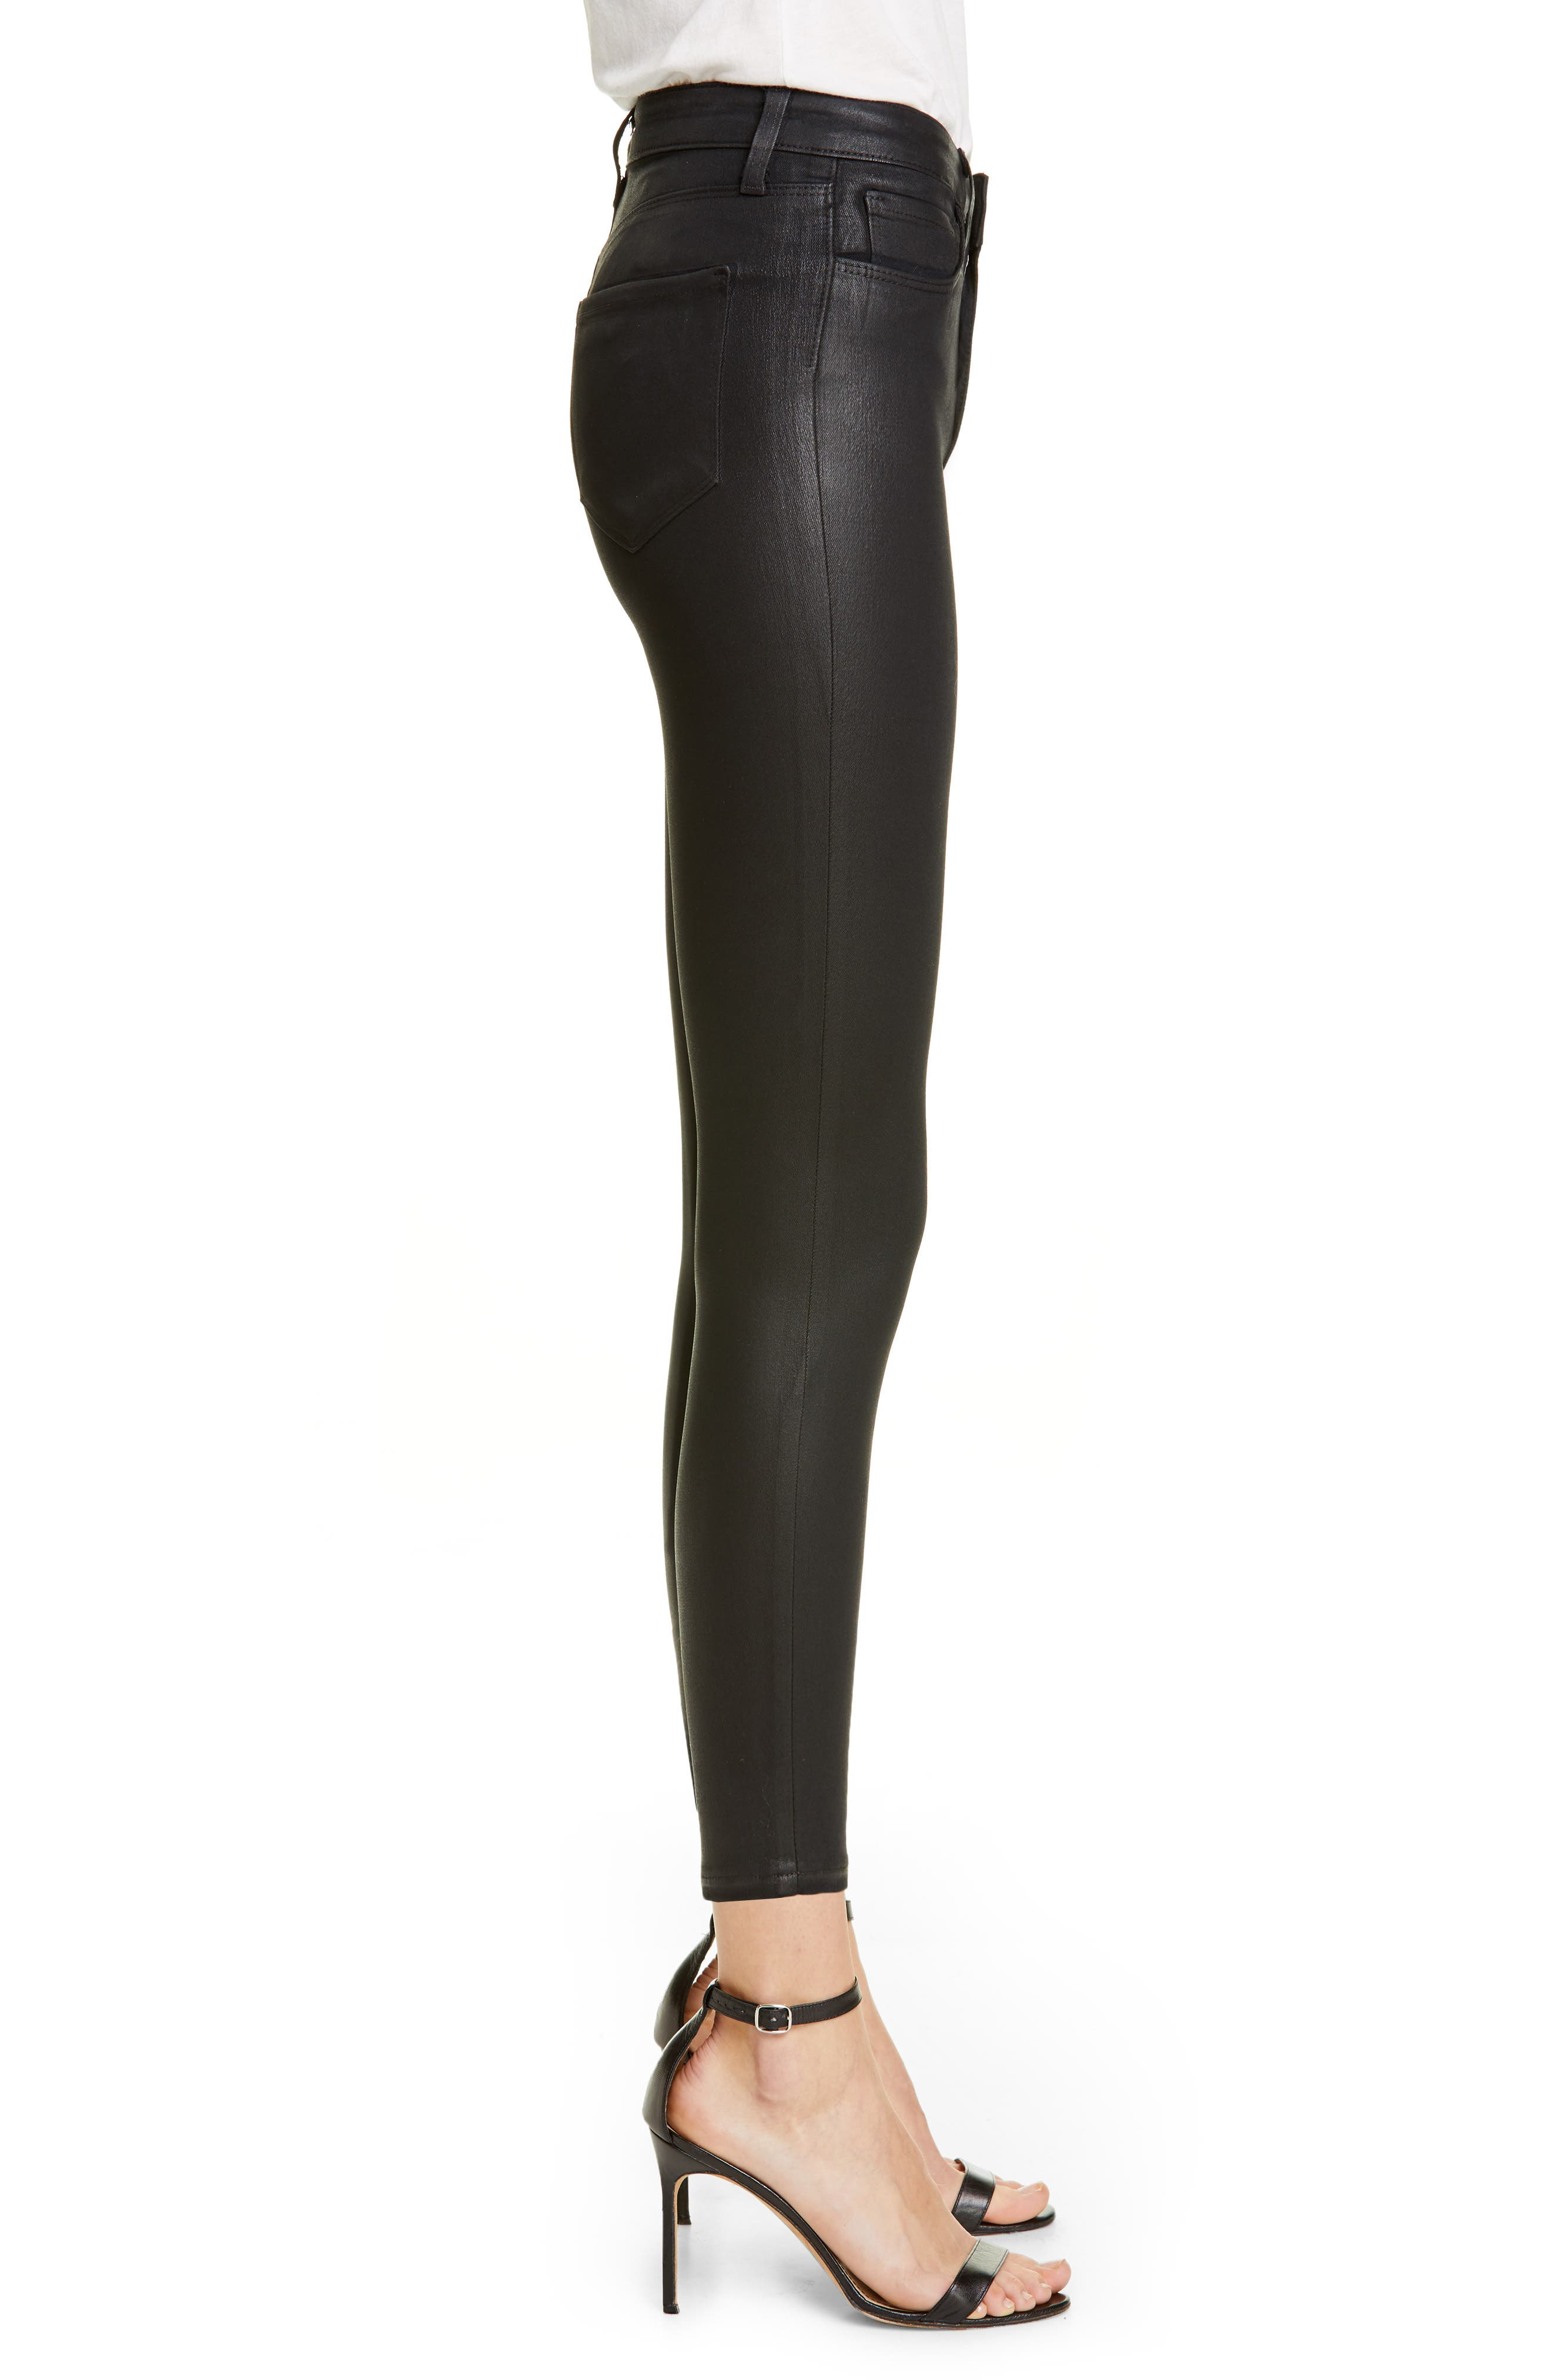 L'AGENCE, Coated High Waist Skinny Jeans, Alternate thumbnail 3, color, BLACK COATED